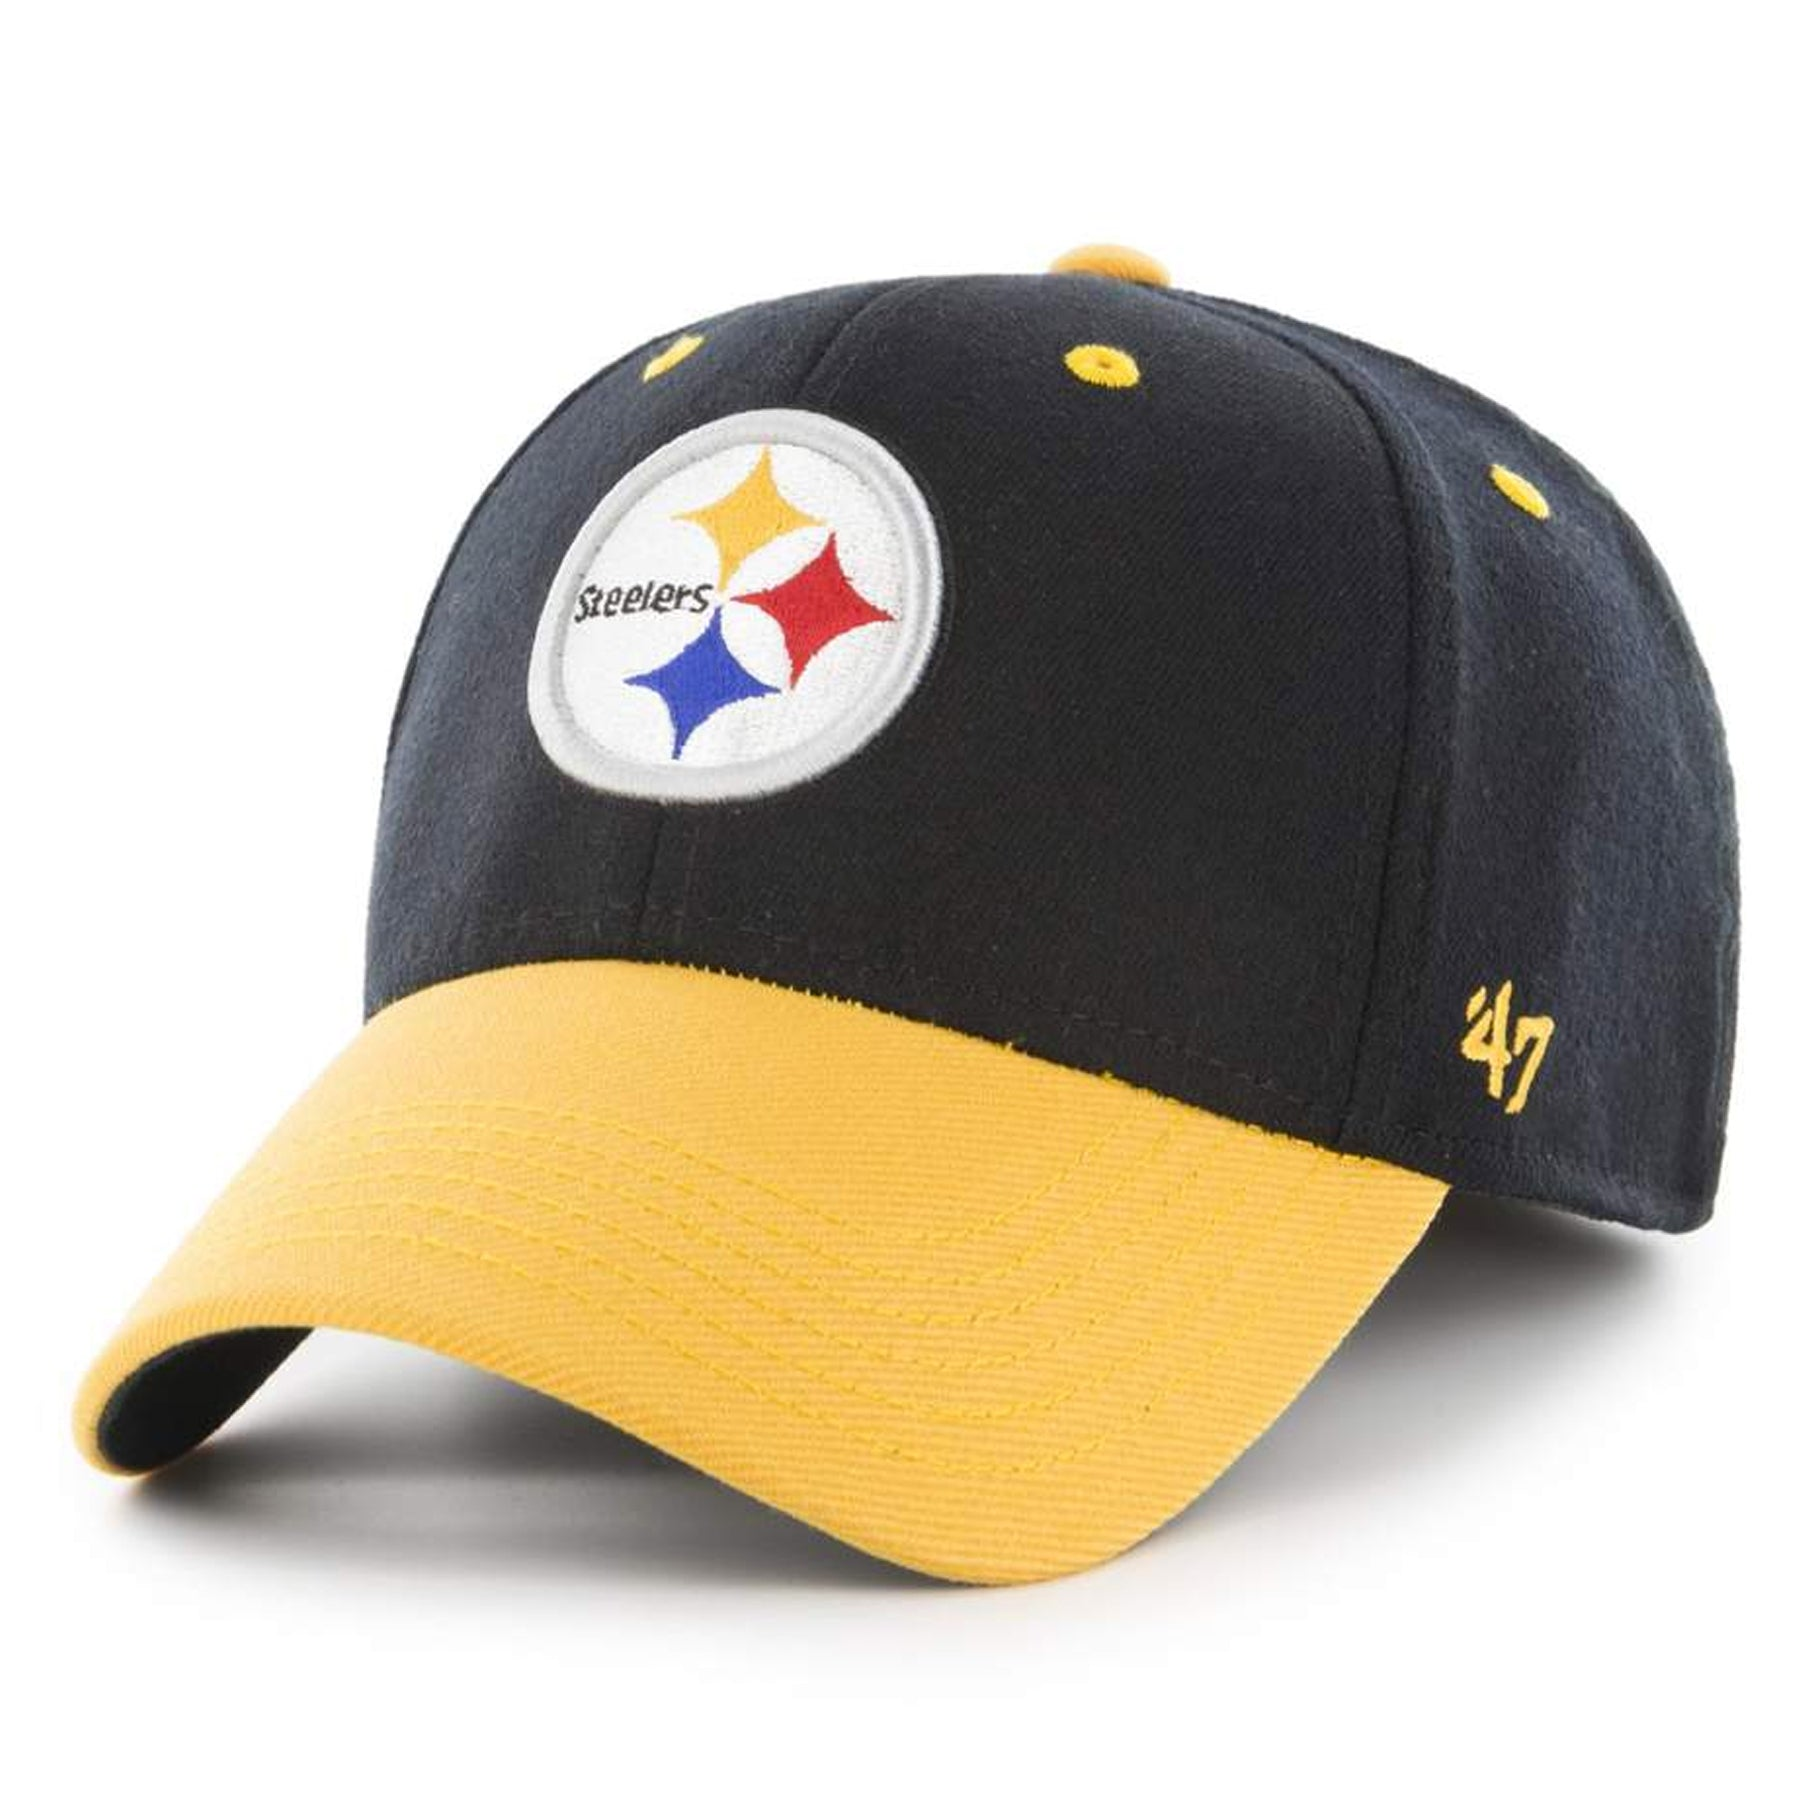 971843d28db Embroidered on the front of the Pittsburgh Steelers one size fits all  stretch fit cap is